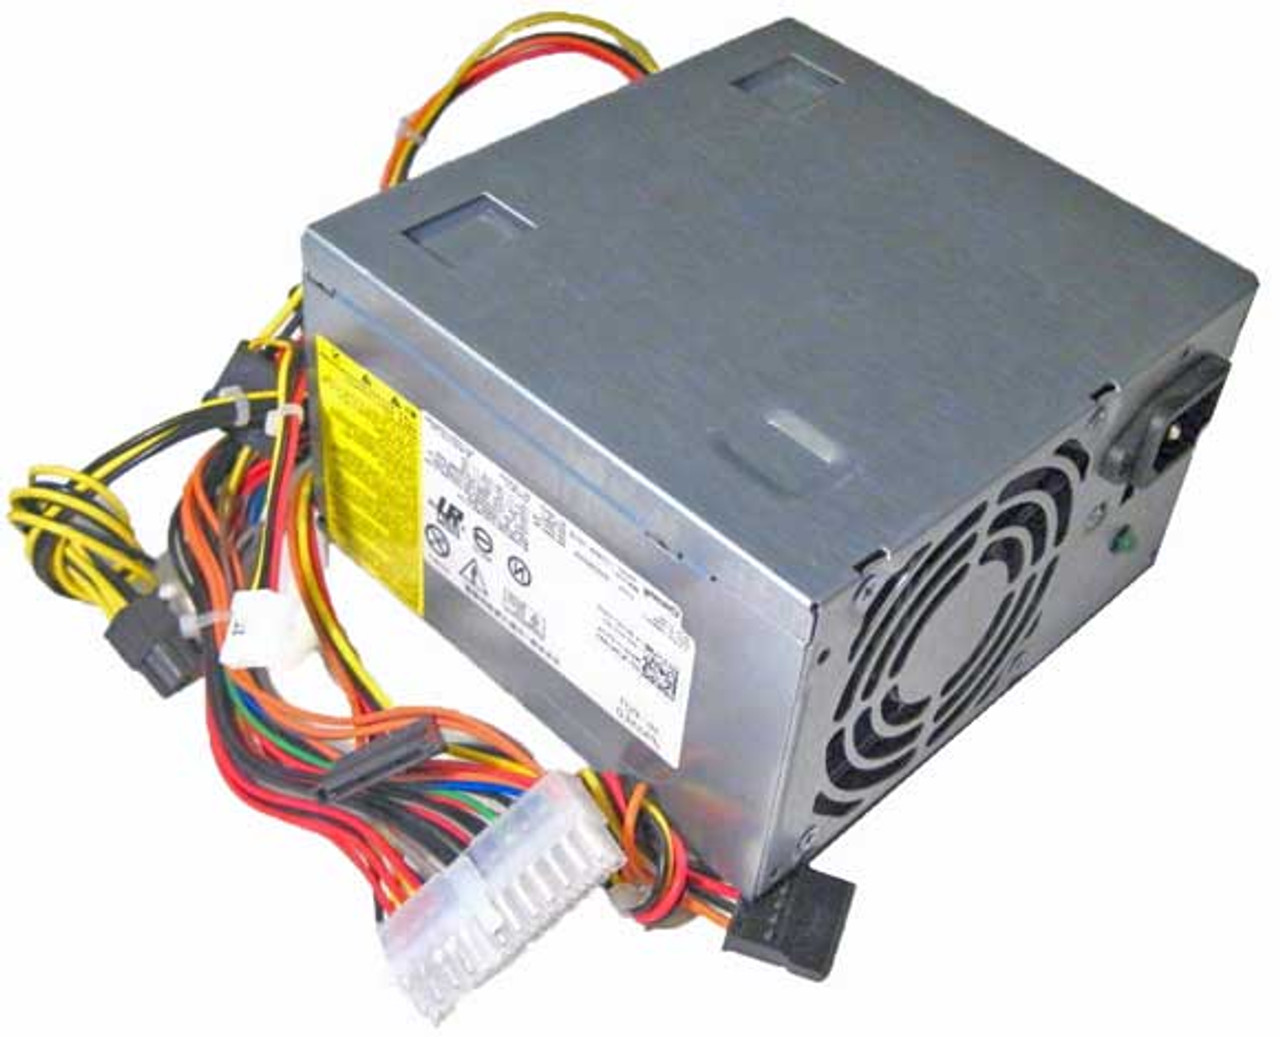 small resolution of  350w power supply unit psu for dell desktop computers rollover image to zoom in